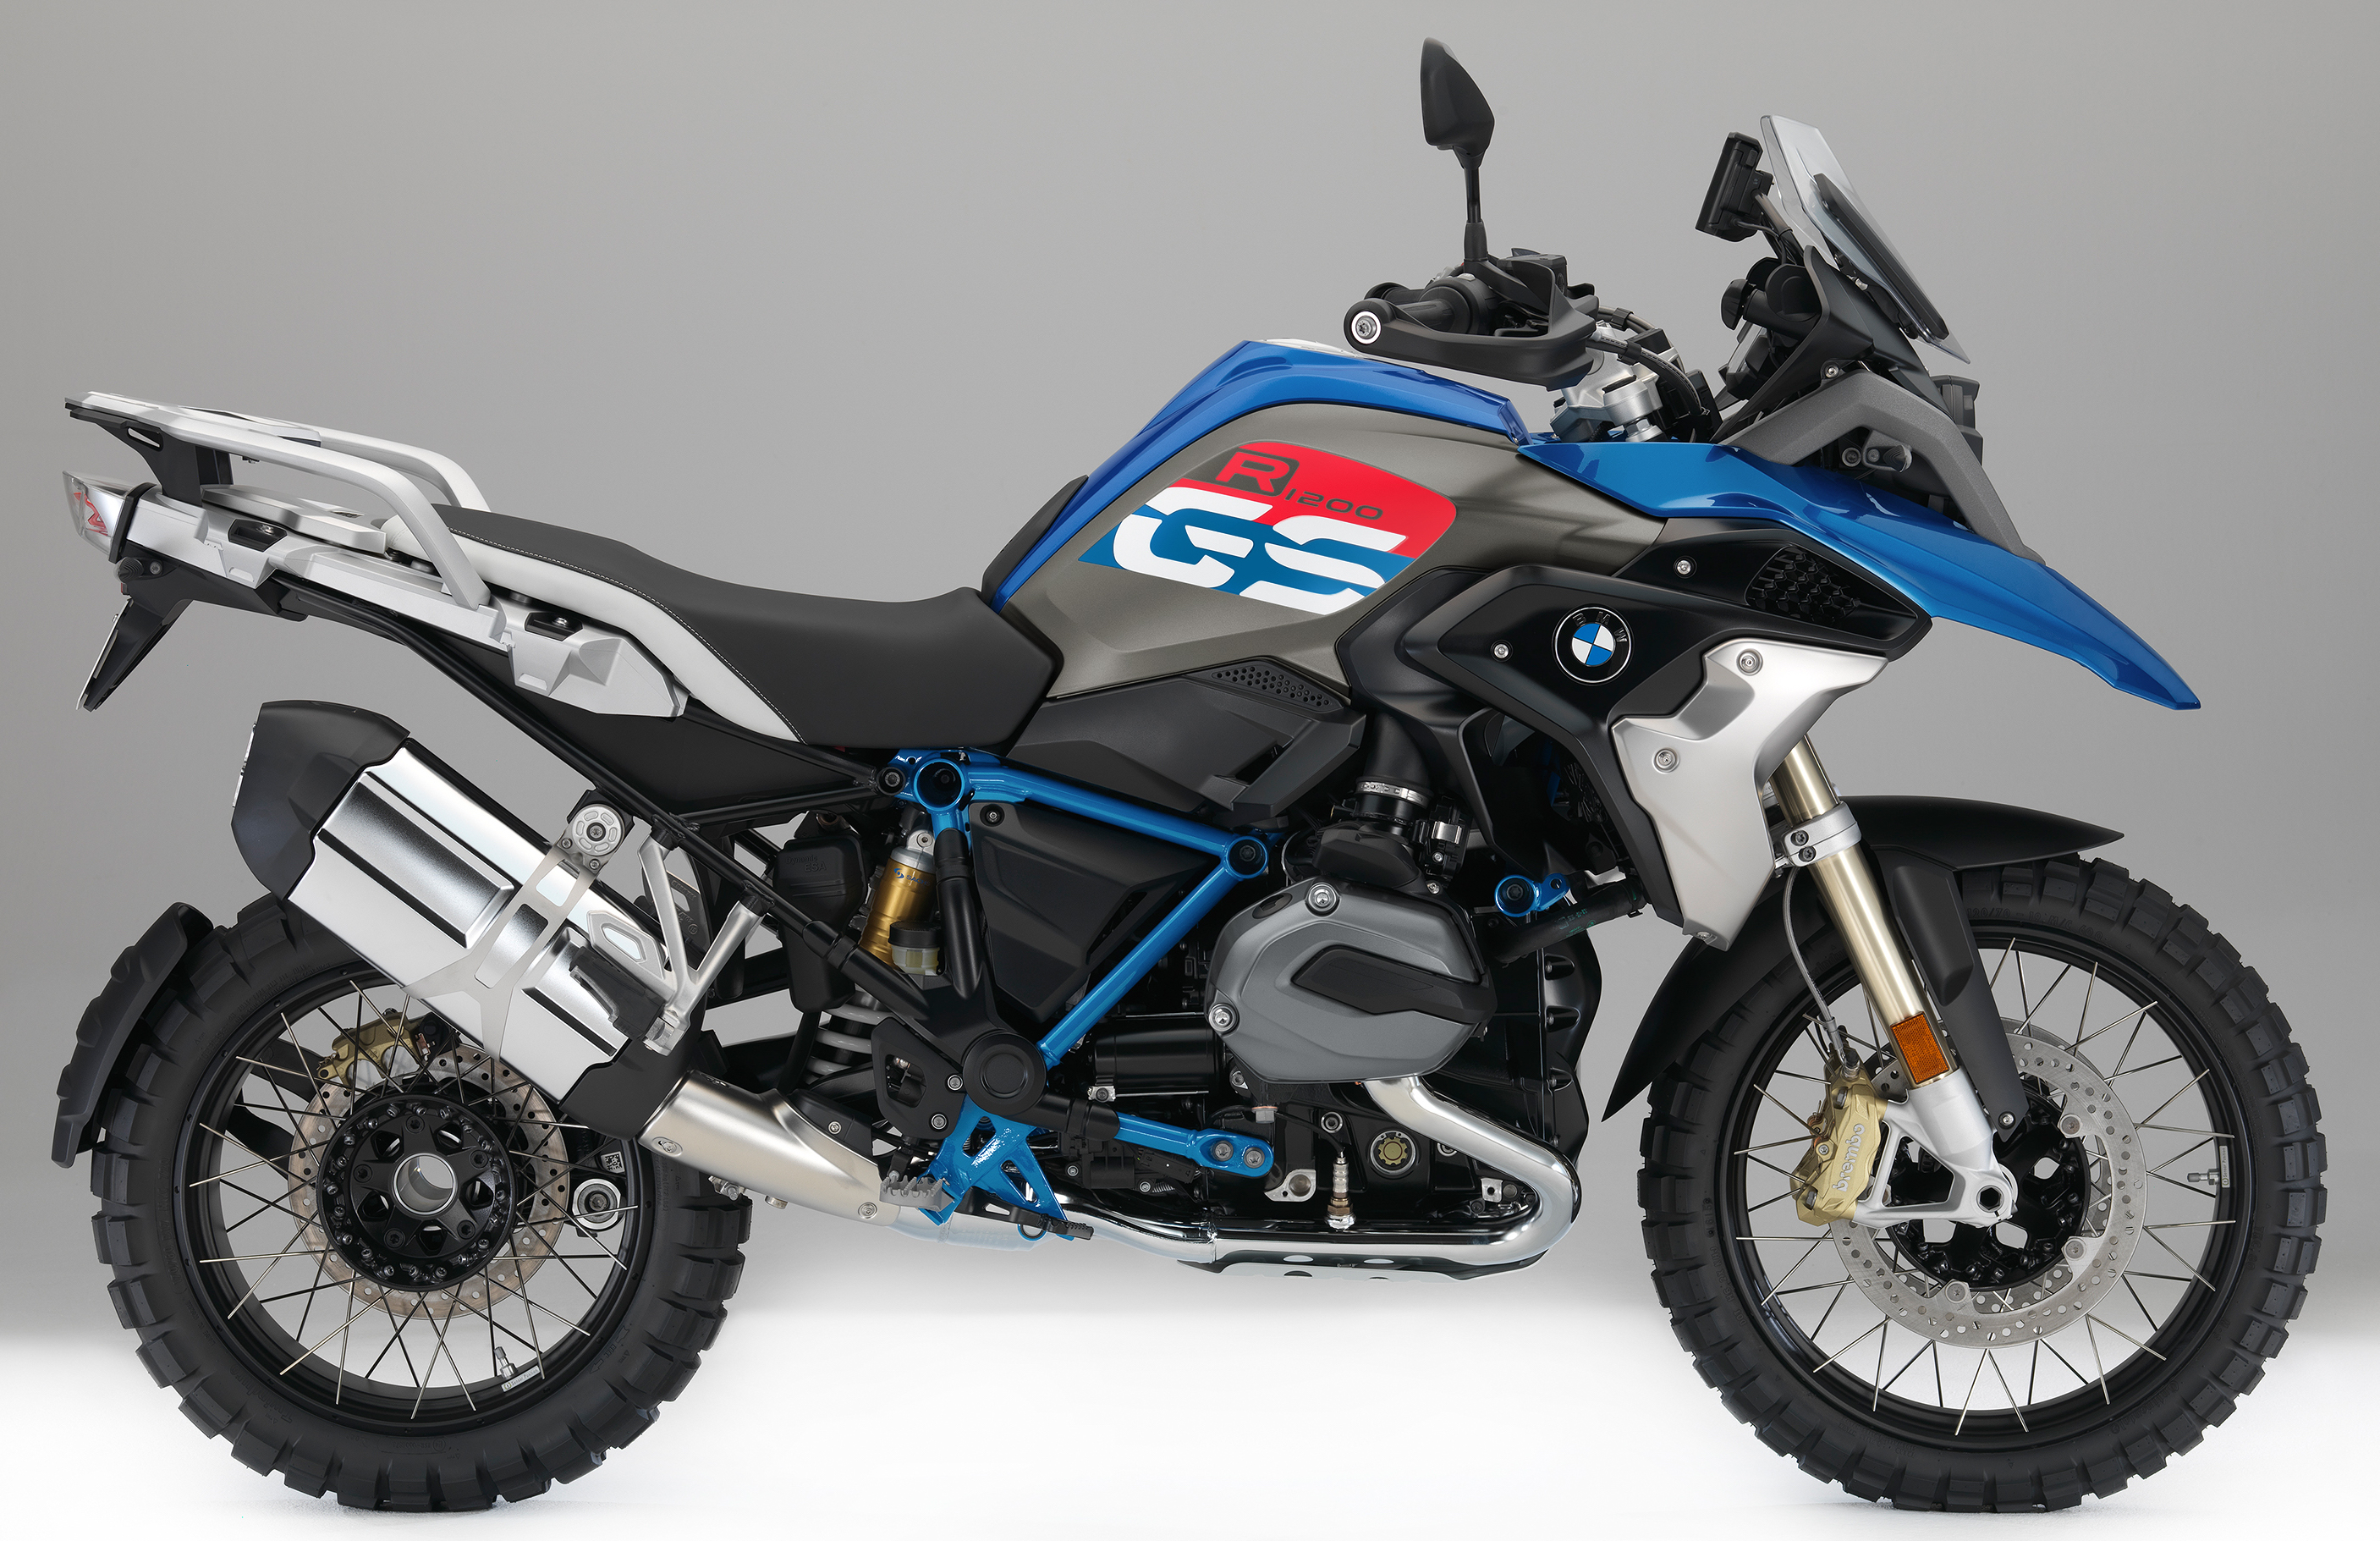 2017 BMW Motorrad R1200 GS – all new for 2017 with Rallye and Exclusive packages, Euro 4 ready ...